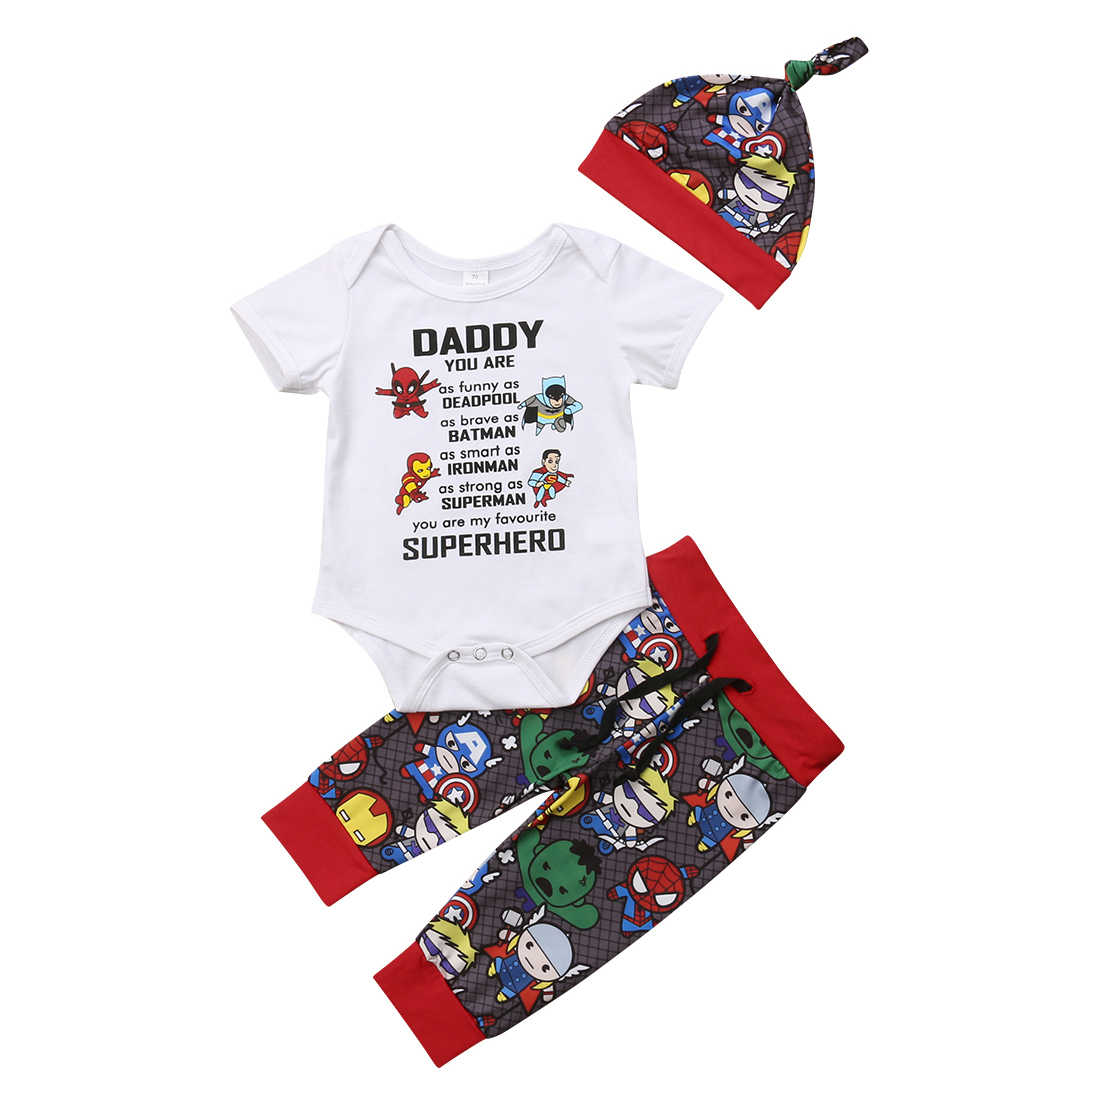 0-18M Daddy Superhero Newborn Kid Baby Boy Girl Clothes set Cotton Cute top and pants superman batman spiderman Clothing outfit